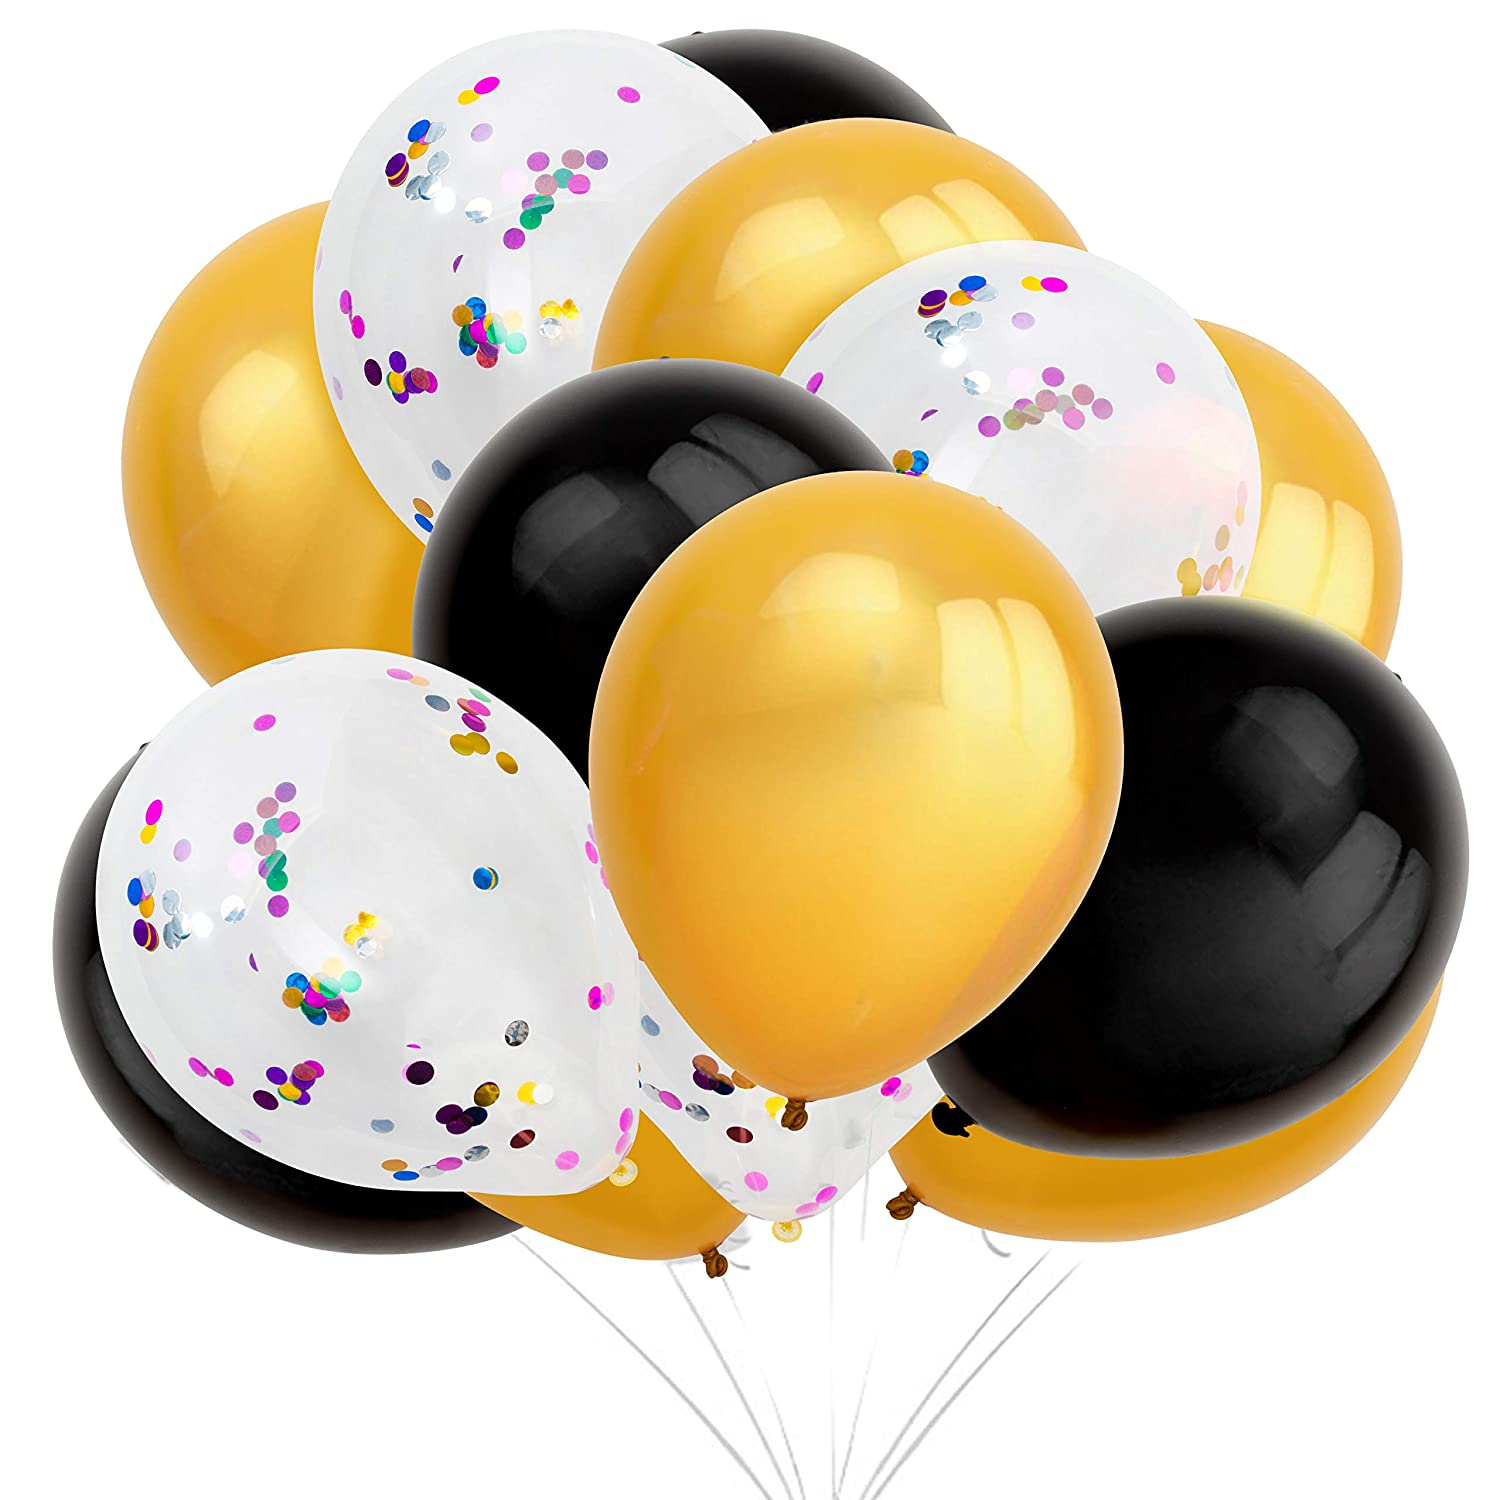 Confetti Balloon Set – 125-Pack Balloons in Black, Gold, Clear/White with Confetti – Includes String and Blowing Straws - Latex Balloons for Birthdays and Anniversaries, 12-Inch Diameter Balloons